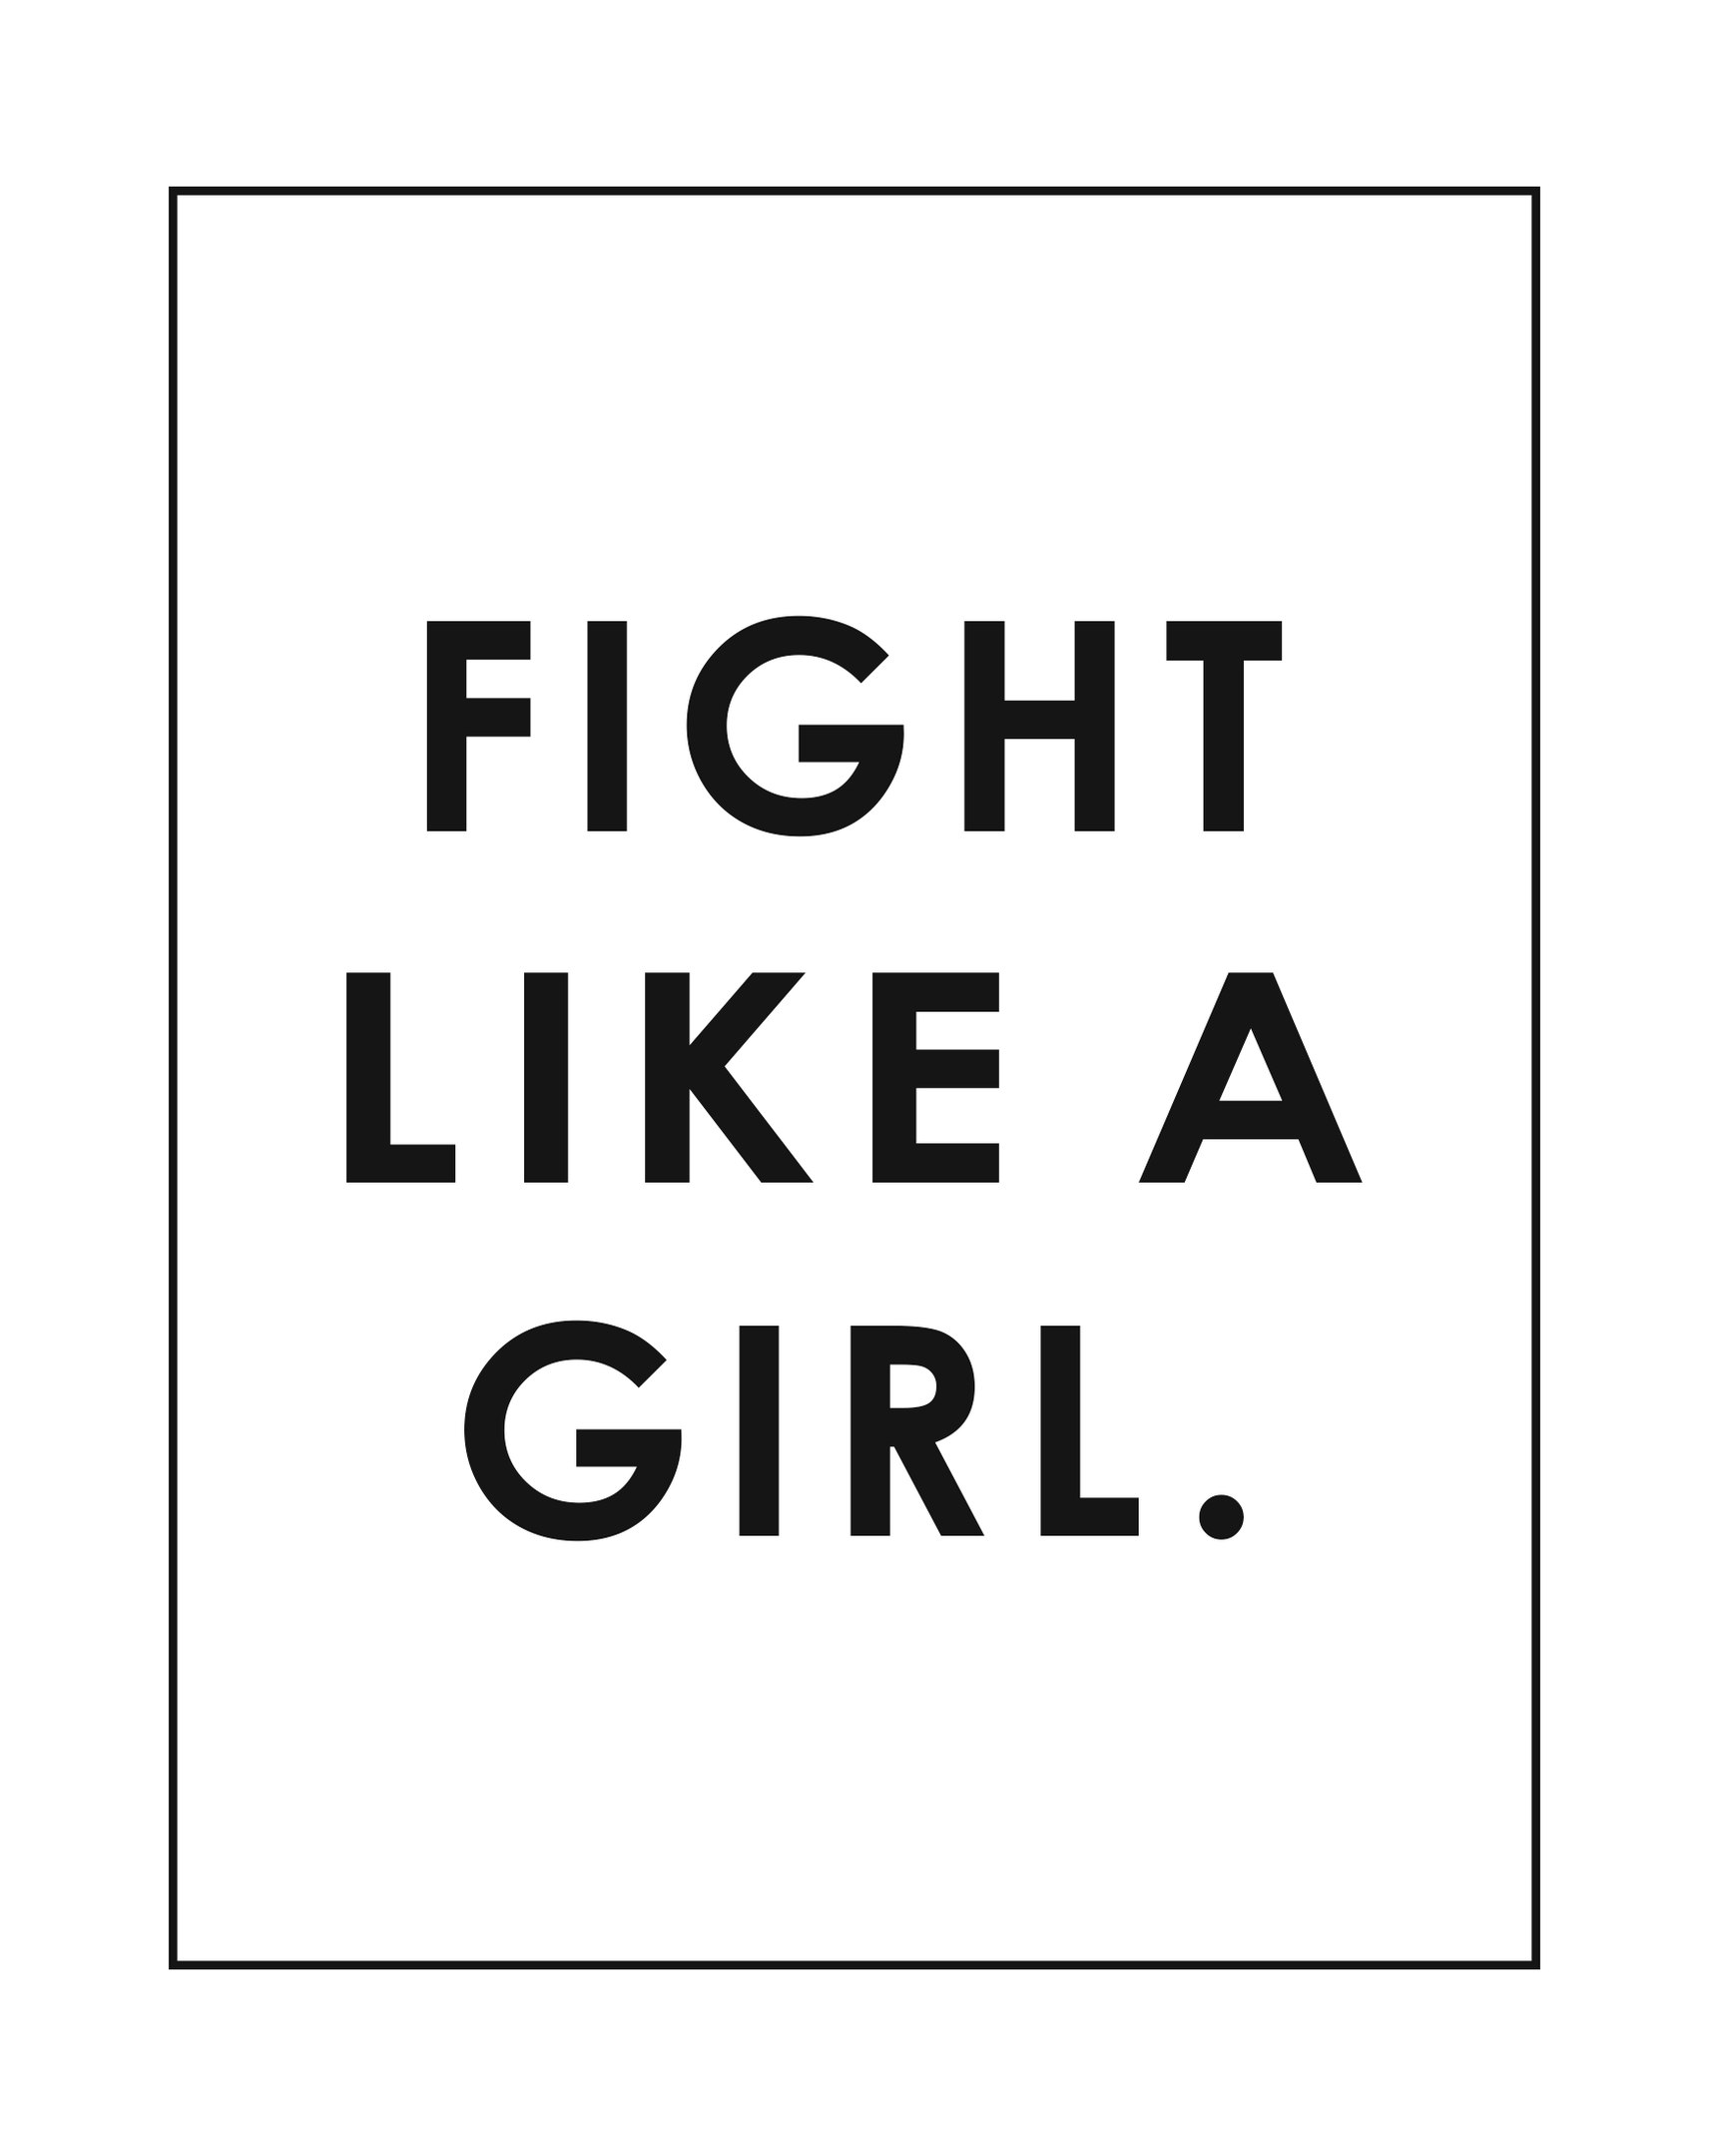 Fight Like a Girl Poster Free CDR Vectors Art